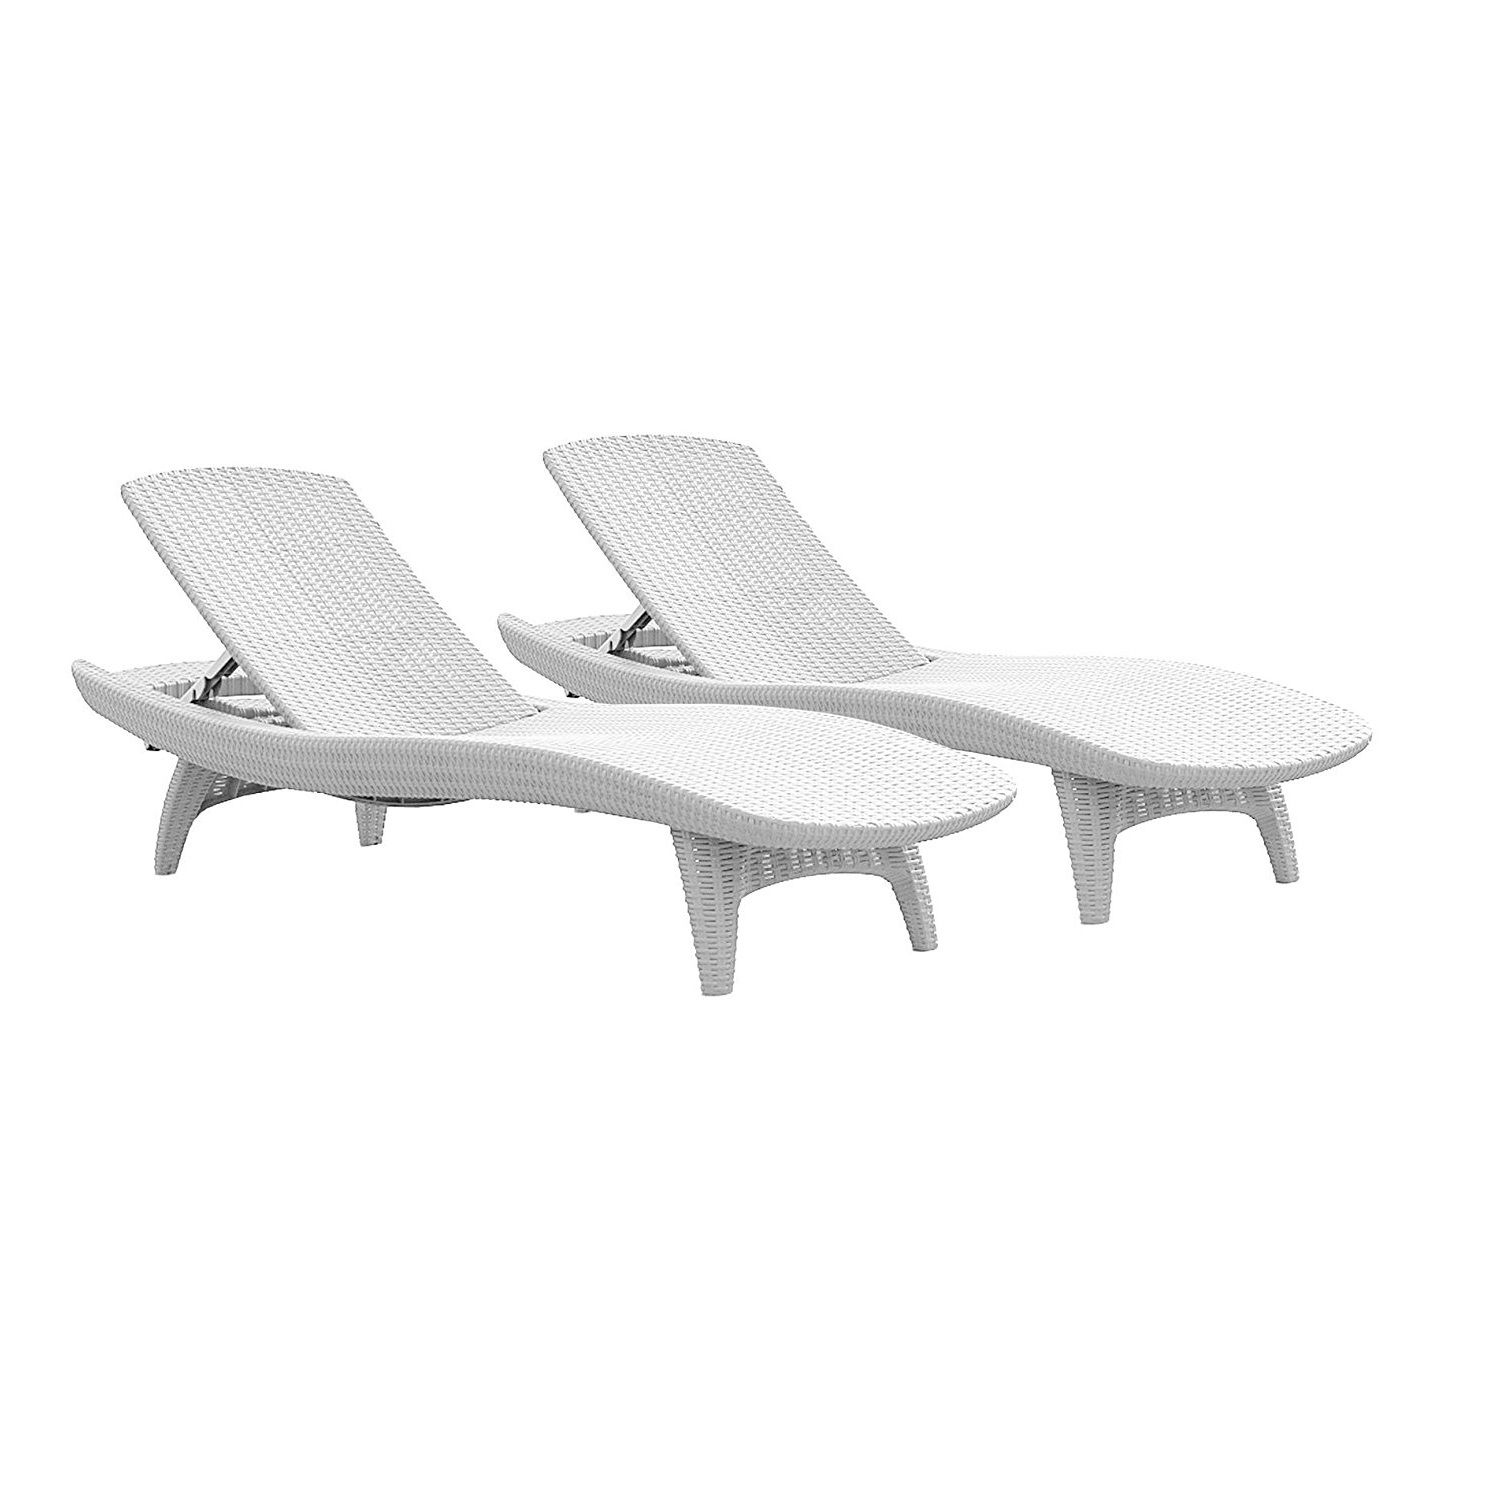 Wicker Chaise Lounge Chairs Rattan Lounge Chairs Beachfront Decor Wicker Chaise Lounge Outdoor Chaise Lounge Chair Outdoor Wicker Chaise Lounge